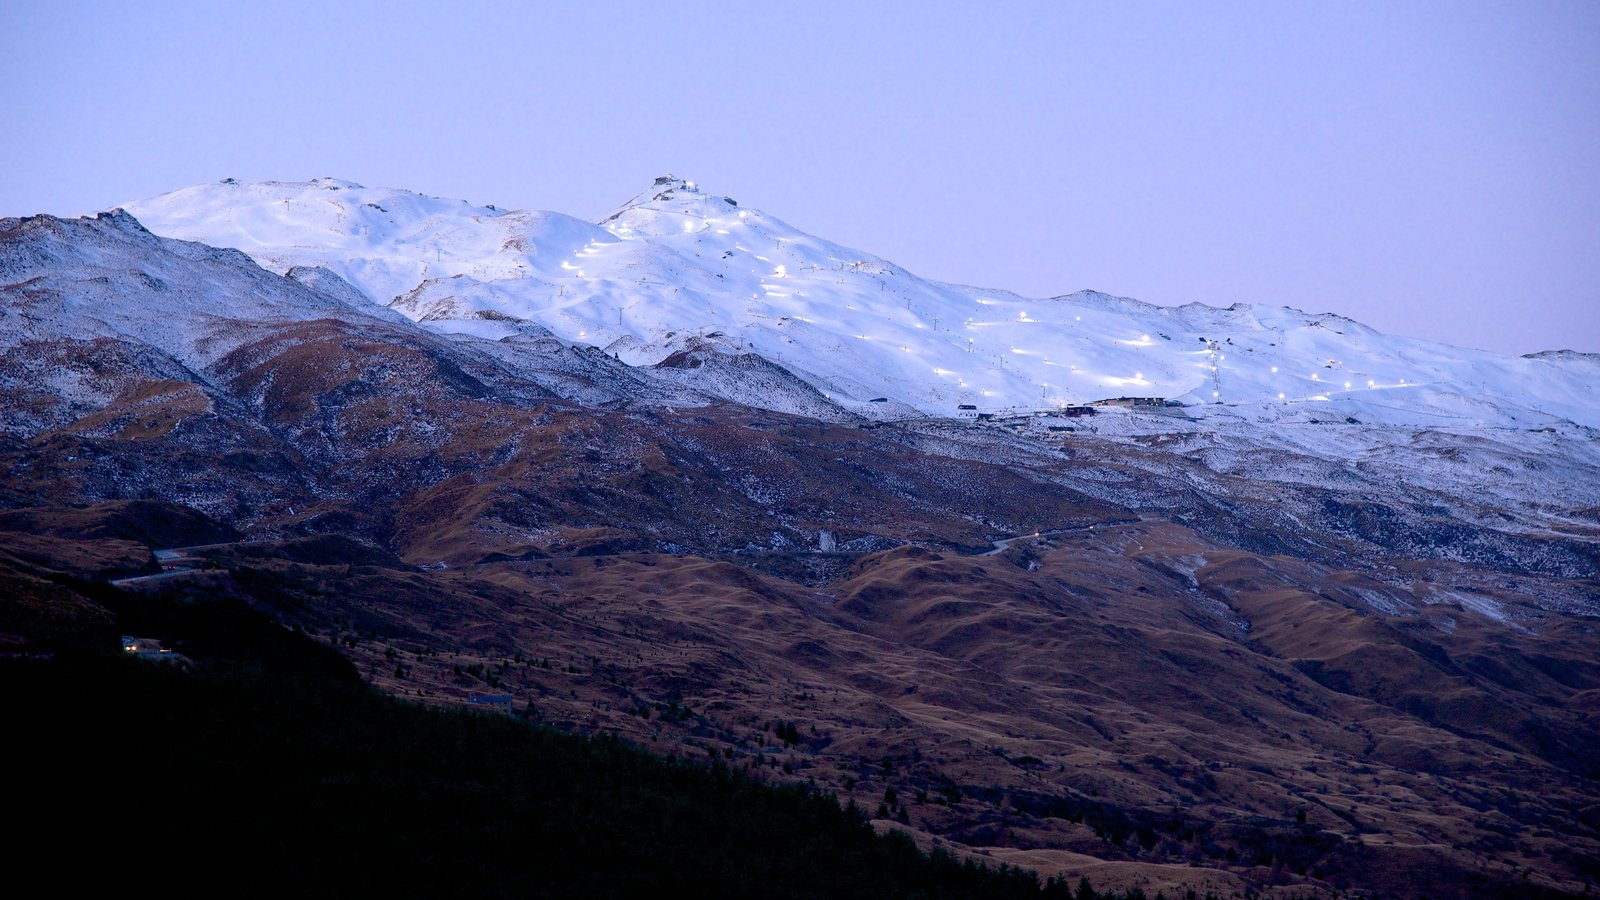 Coronet Peak Ski Area showing mountains and snow